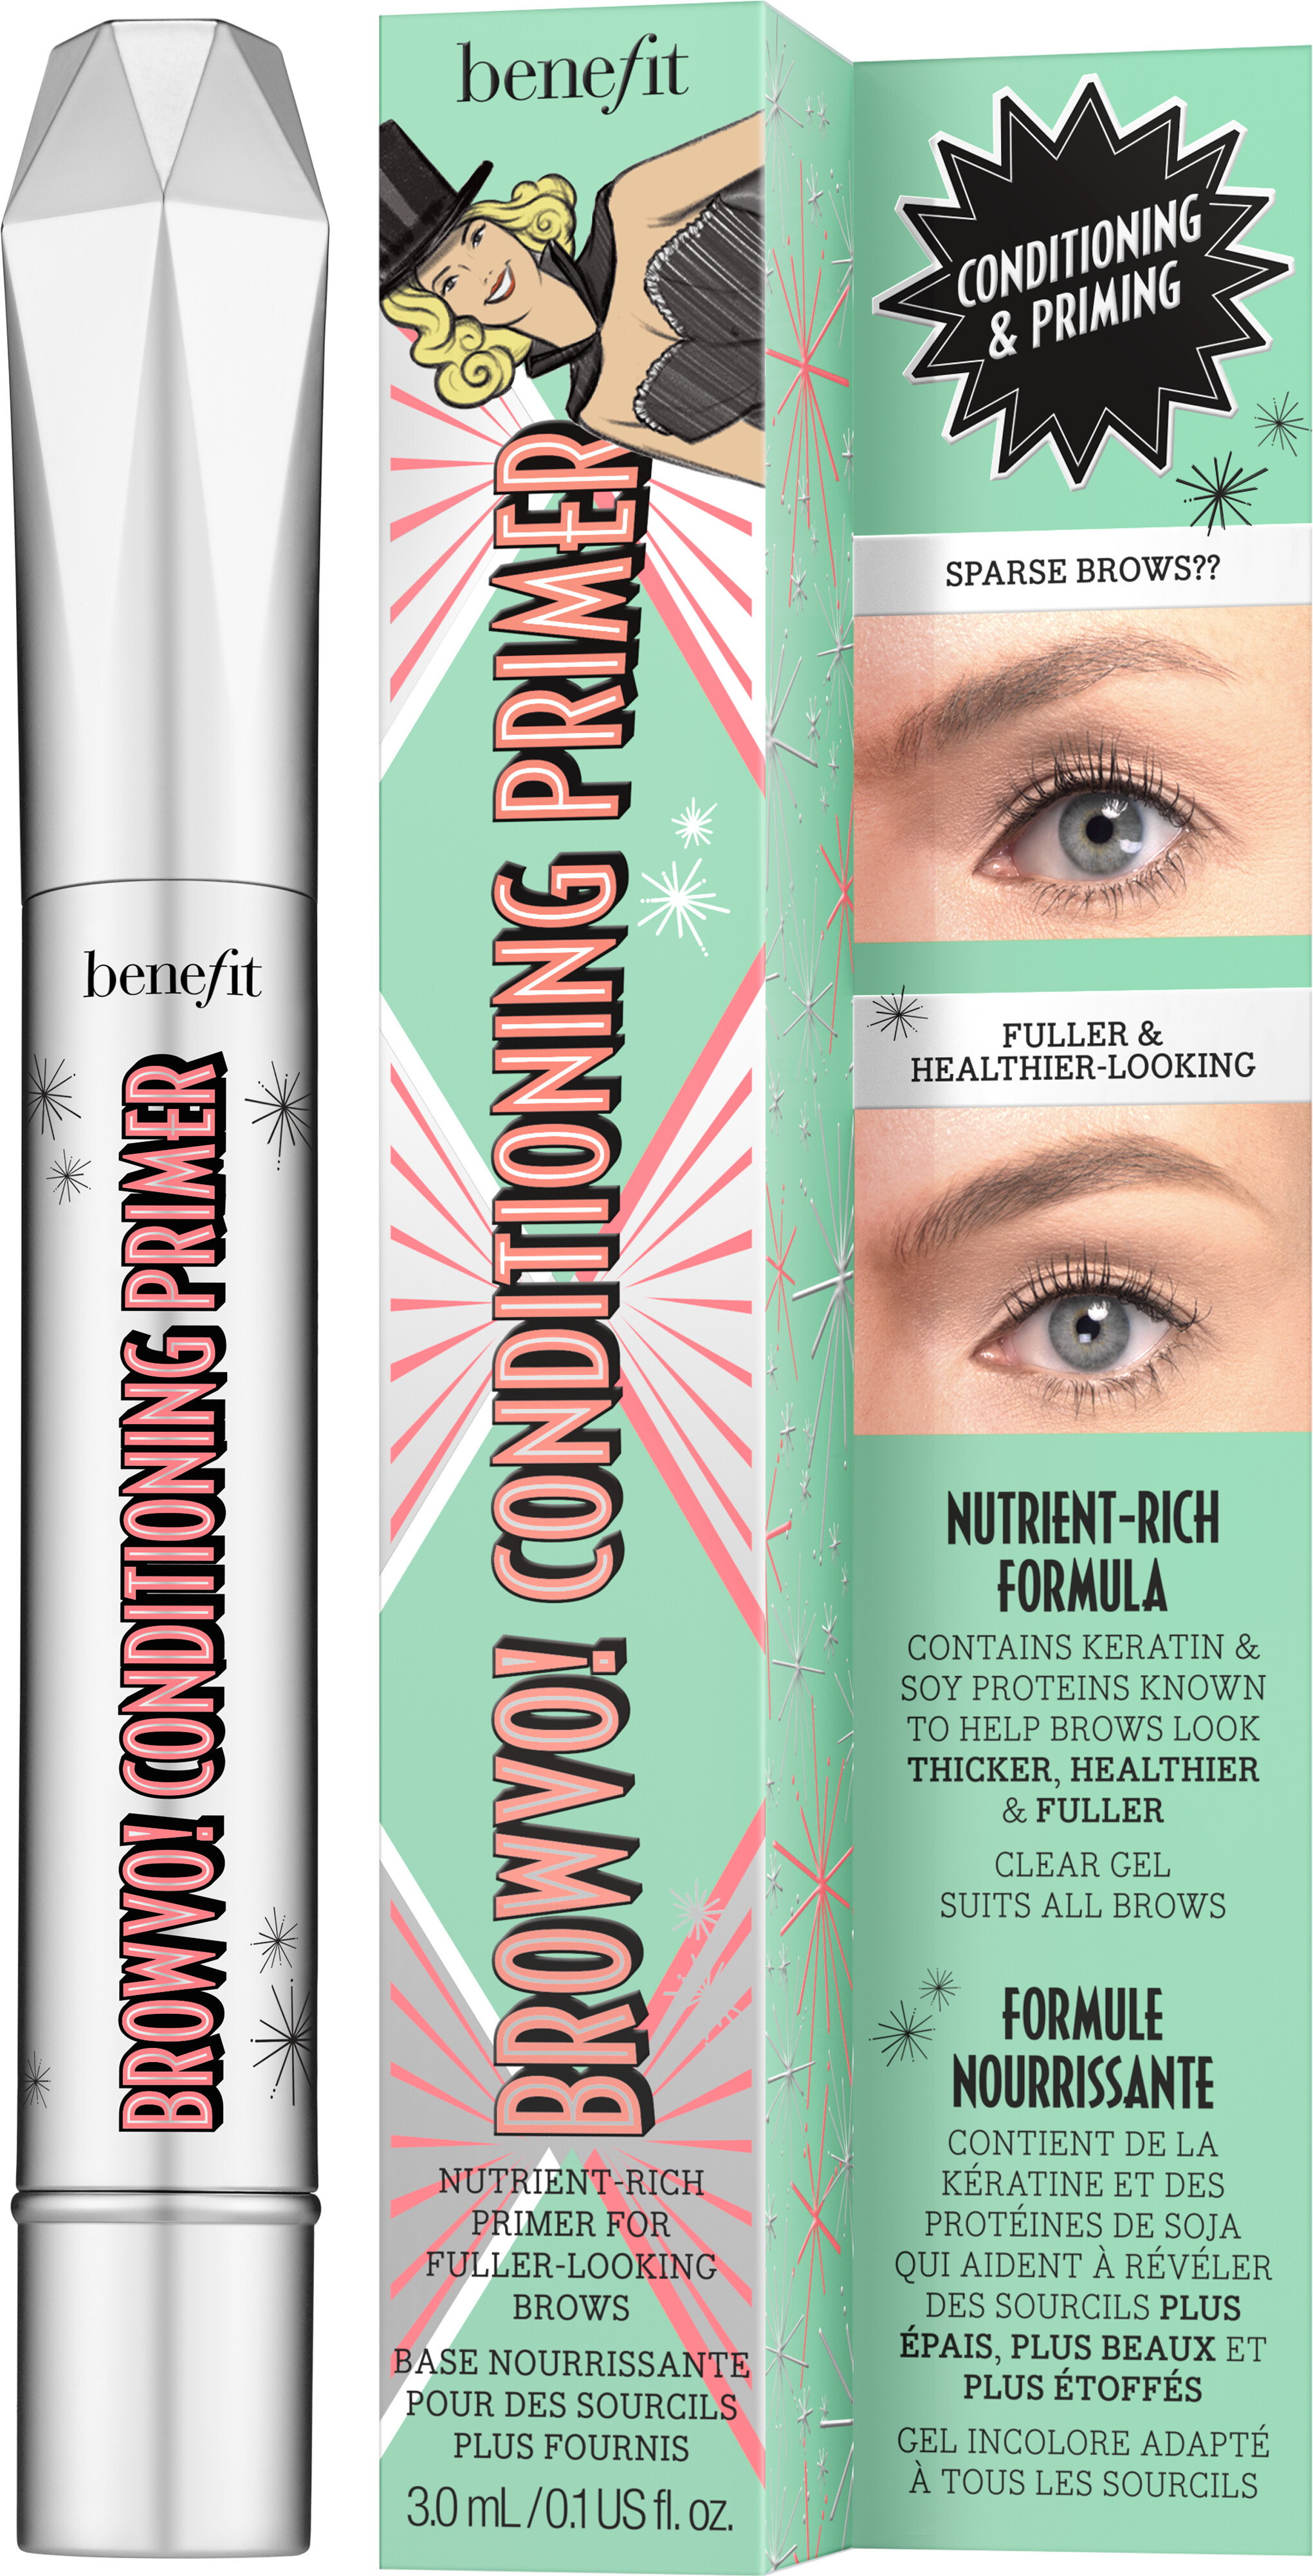 BROWVO! Conditioning Eyebrow Primer by Benefit #10